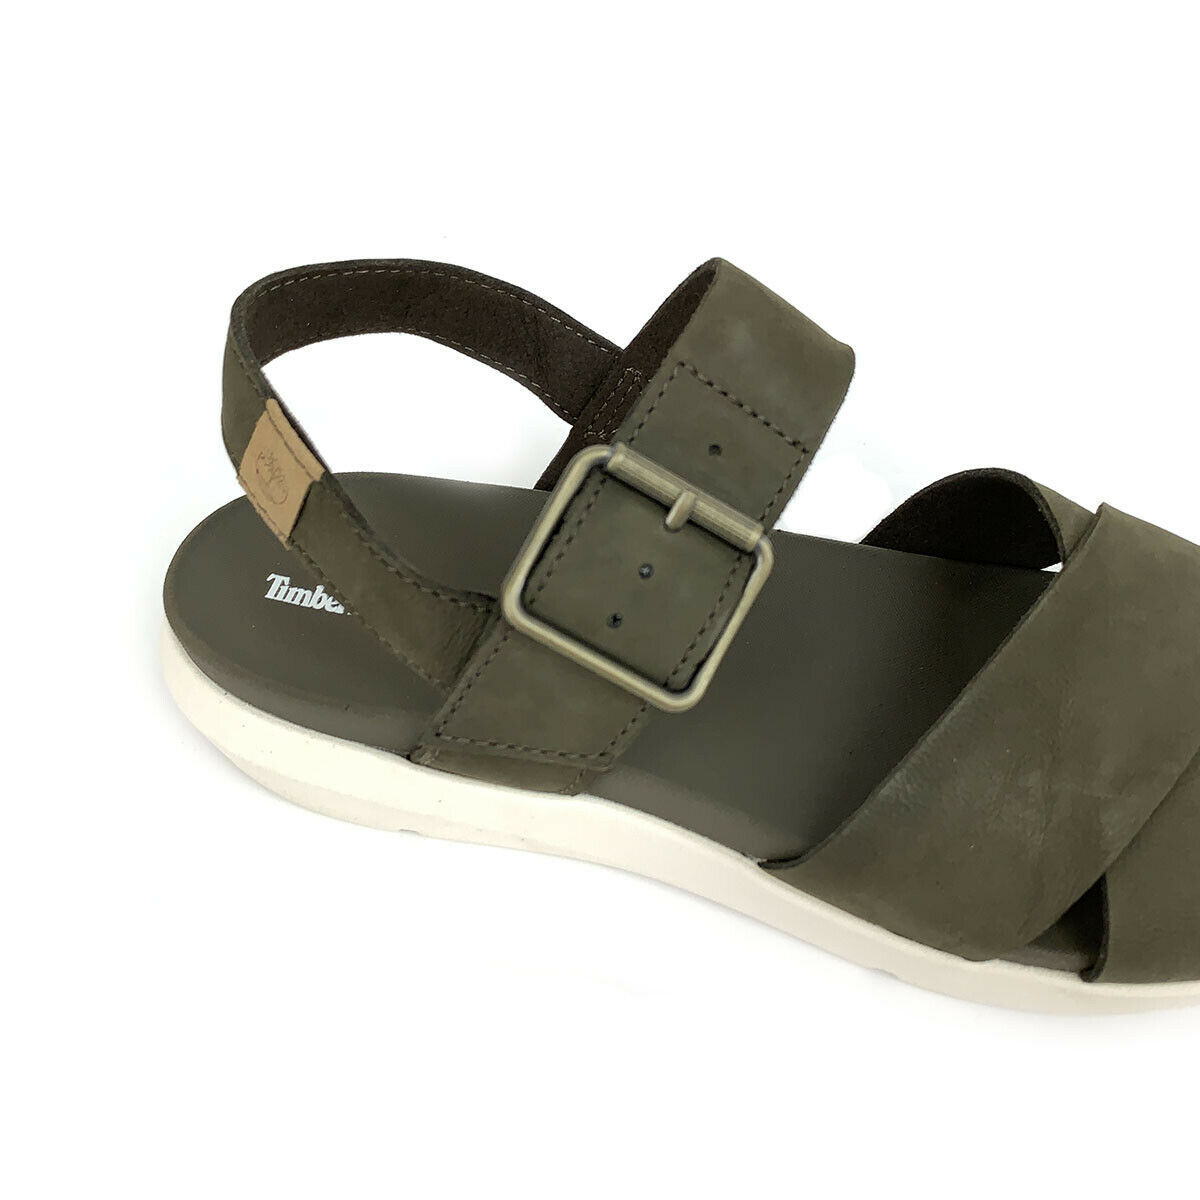 Timberland Women's Wilesport Olive Green Leather Strap Sandals A1TSW image 6